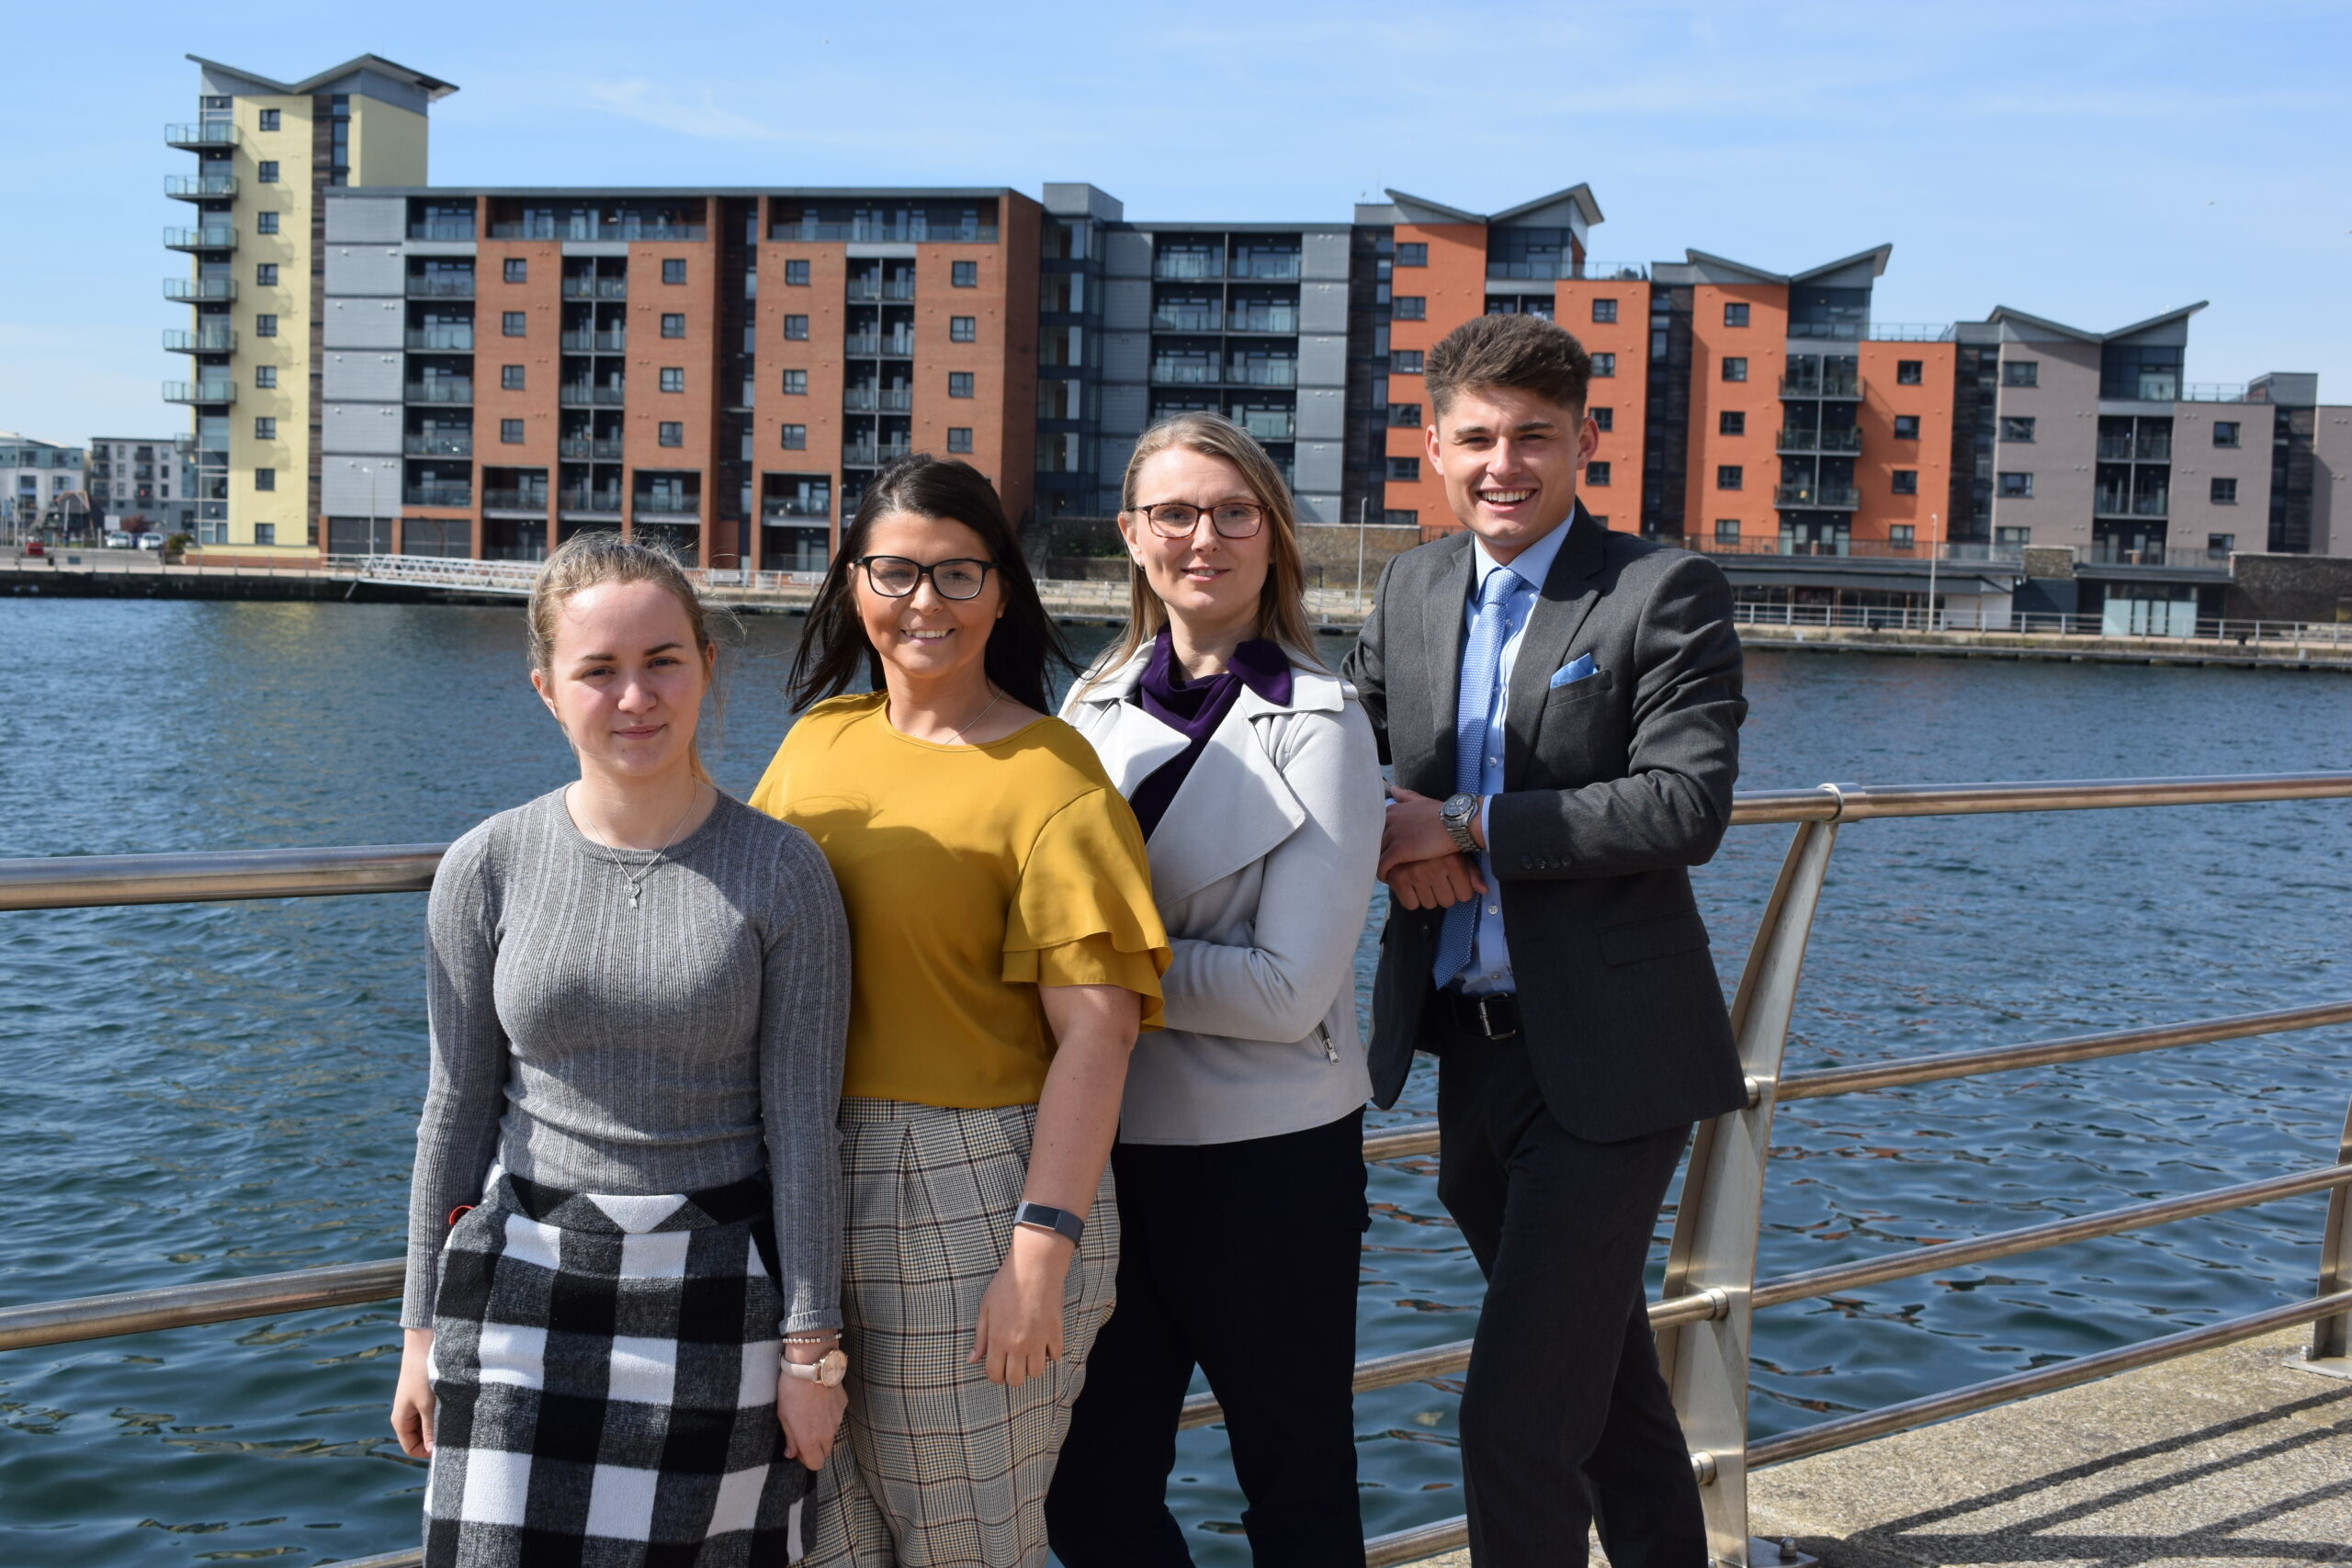 4 staff members of Bevan Buckland LLP at Swansea Waterfront